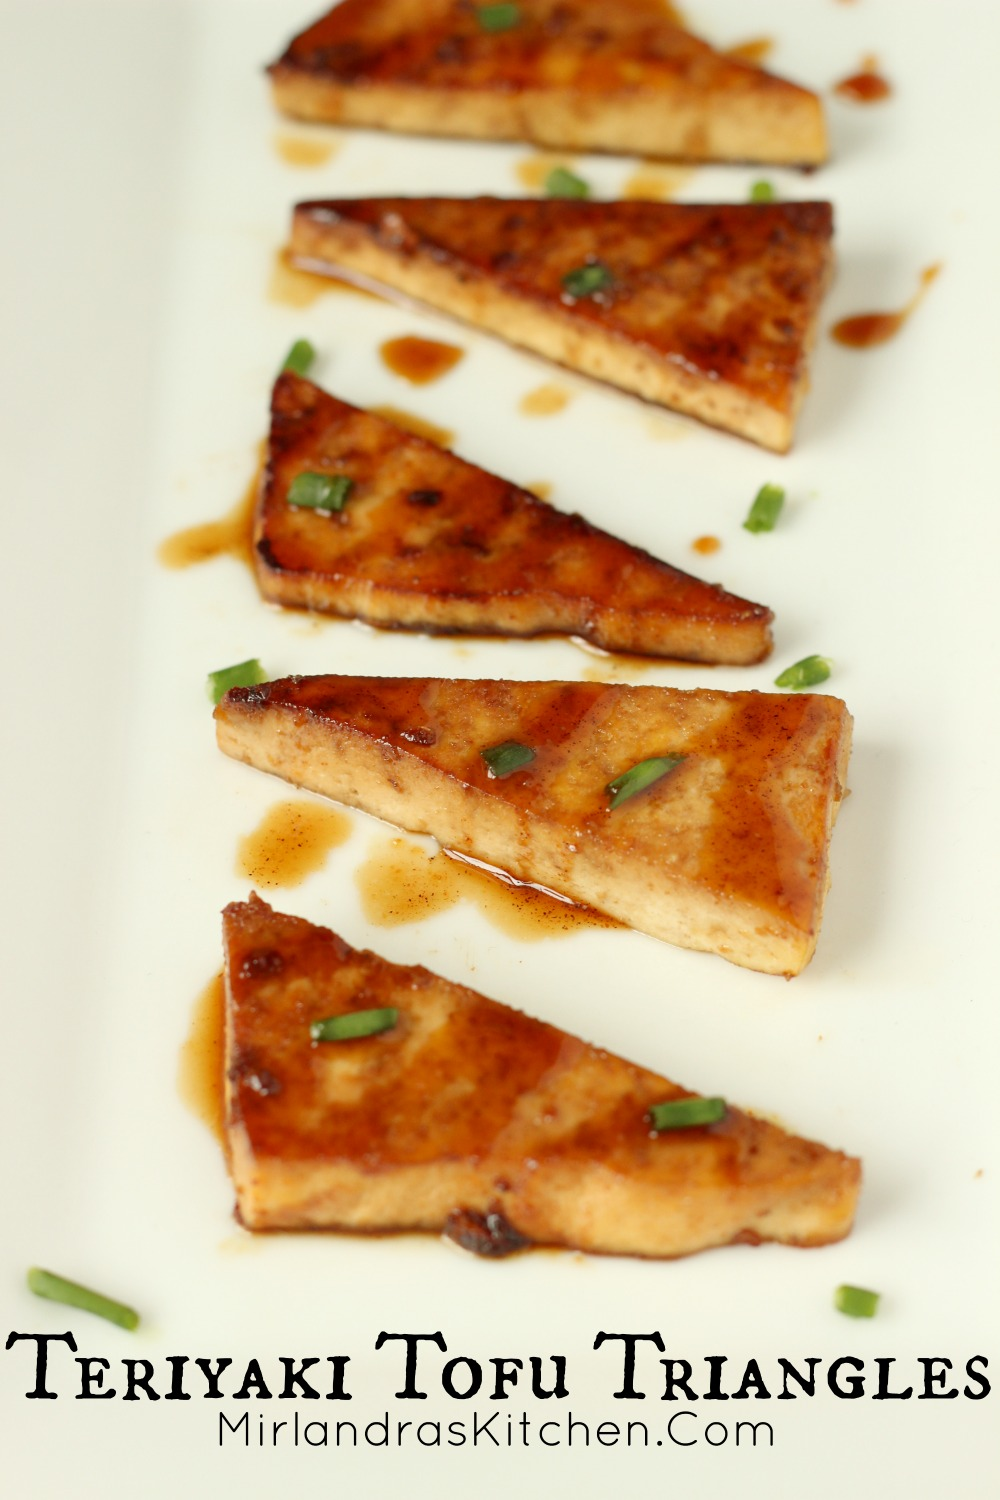 Teriyaki Tofu Triangles are easy to make and popular as an appetizer or meatless main dish. Keep them in mind for your Holiday Parties and the Super Bowl! 